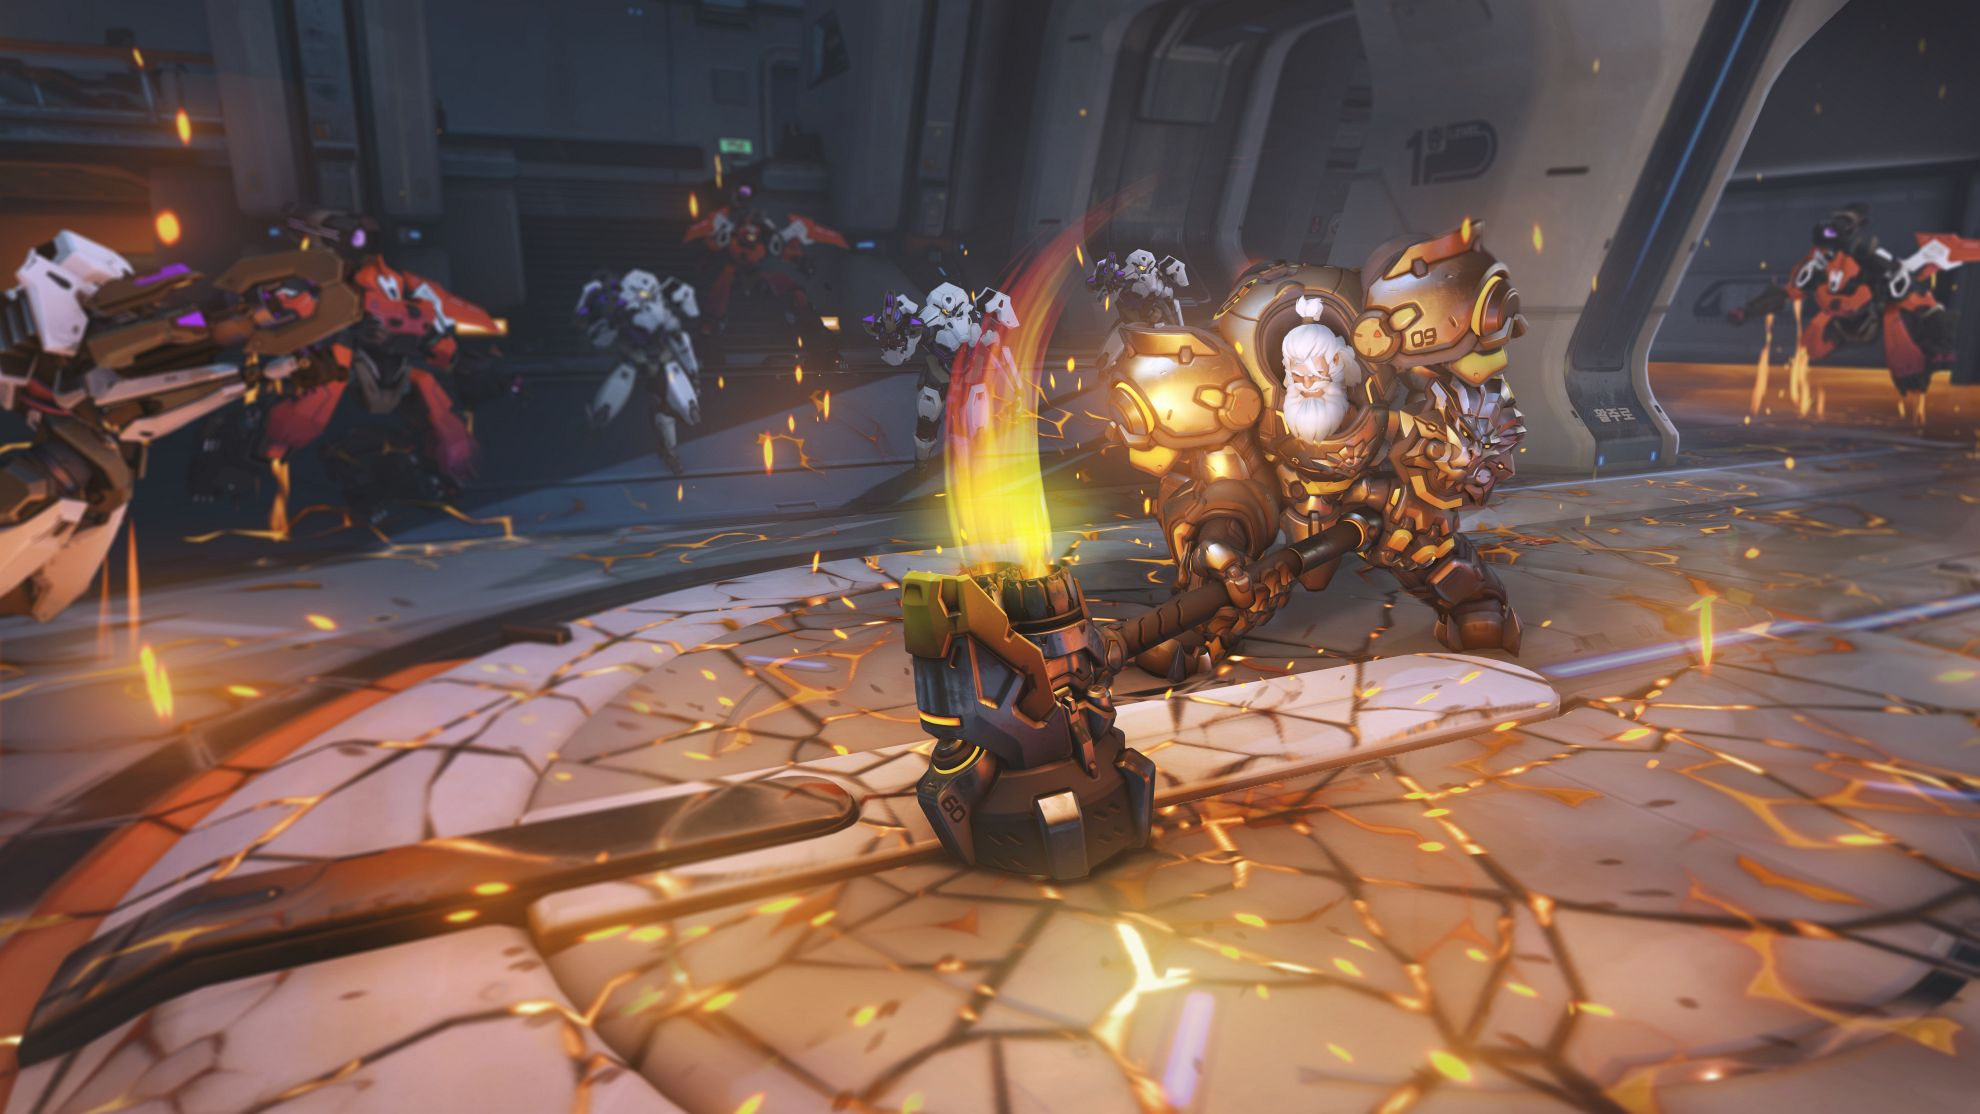 Check out this batch of Overwatch 2 screenshots and stills